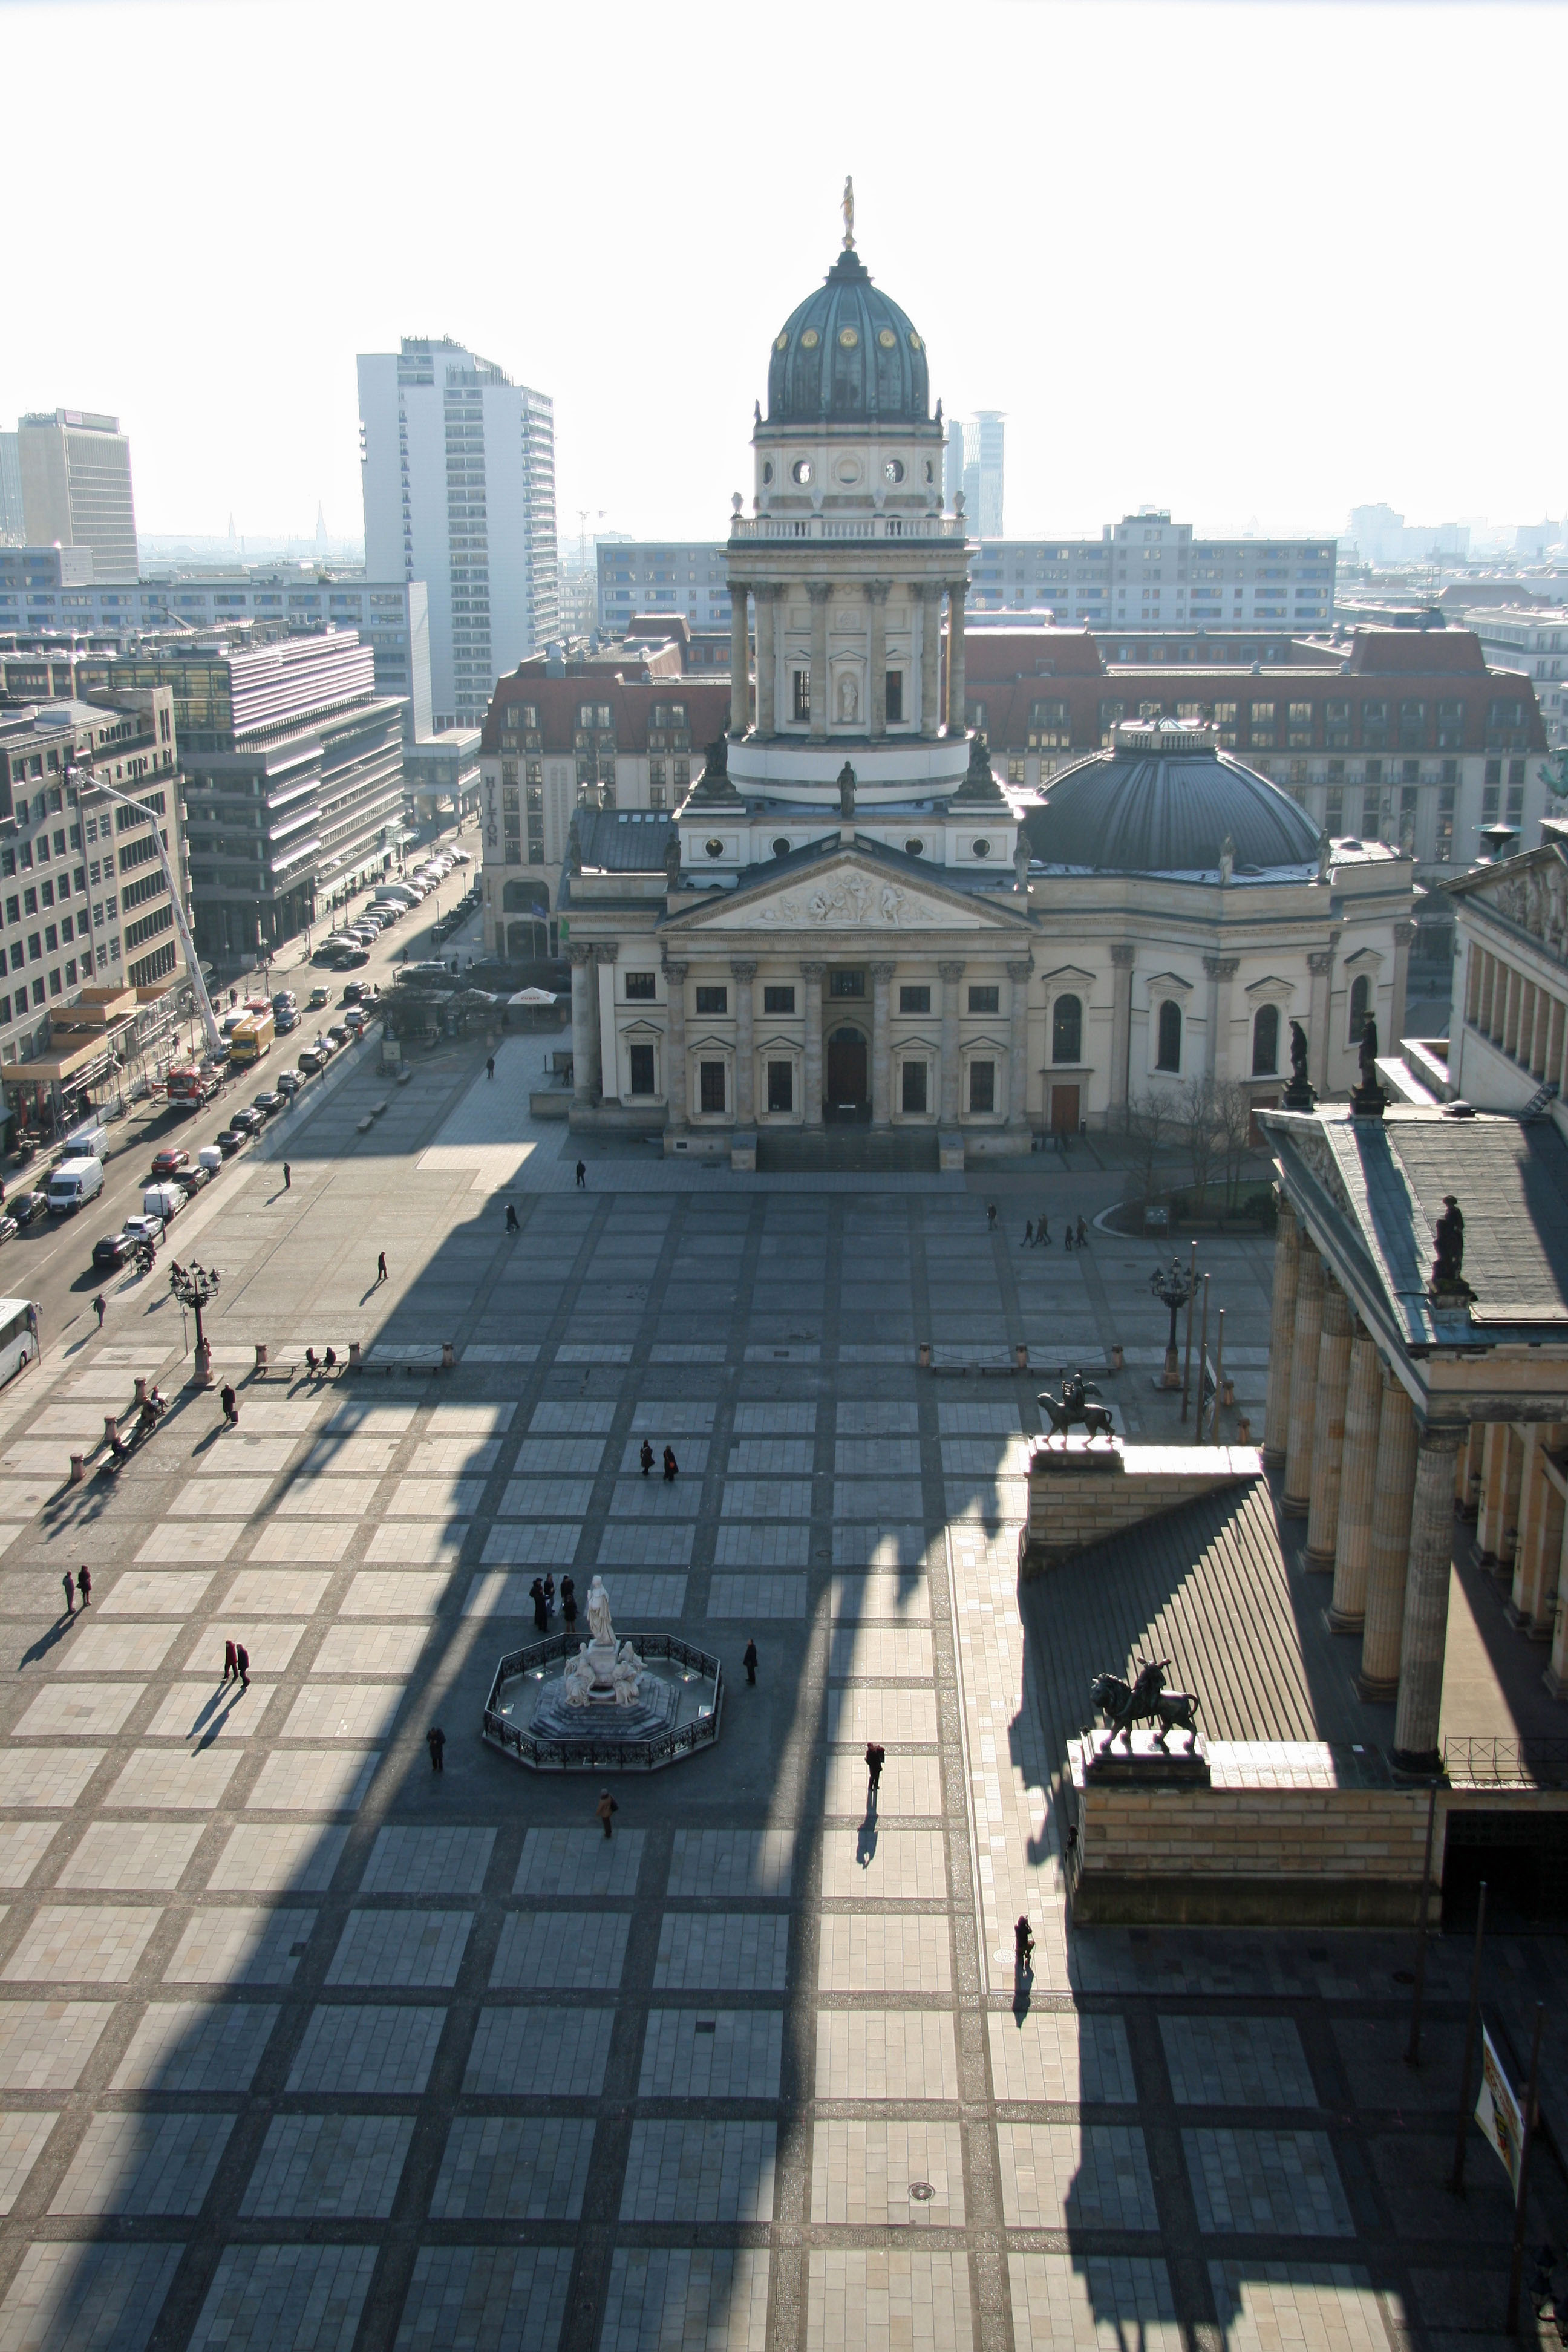 The view across the Gendarmenmarkt from the Französischer Dom (French Cathedral) to the Deutscher Dom (German Cathedral) in Berlin